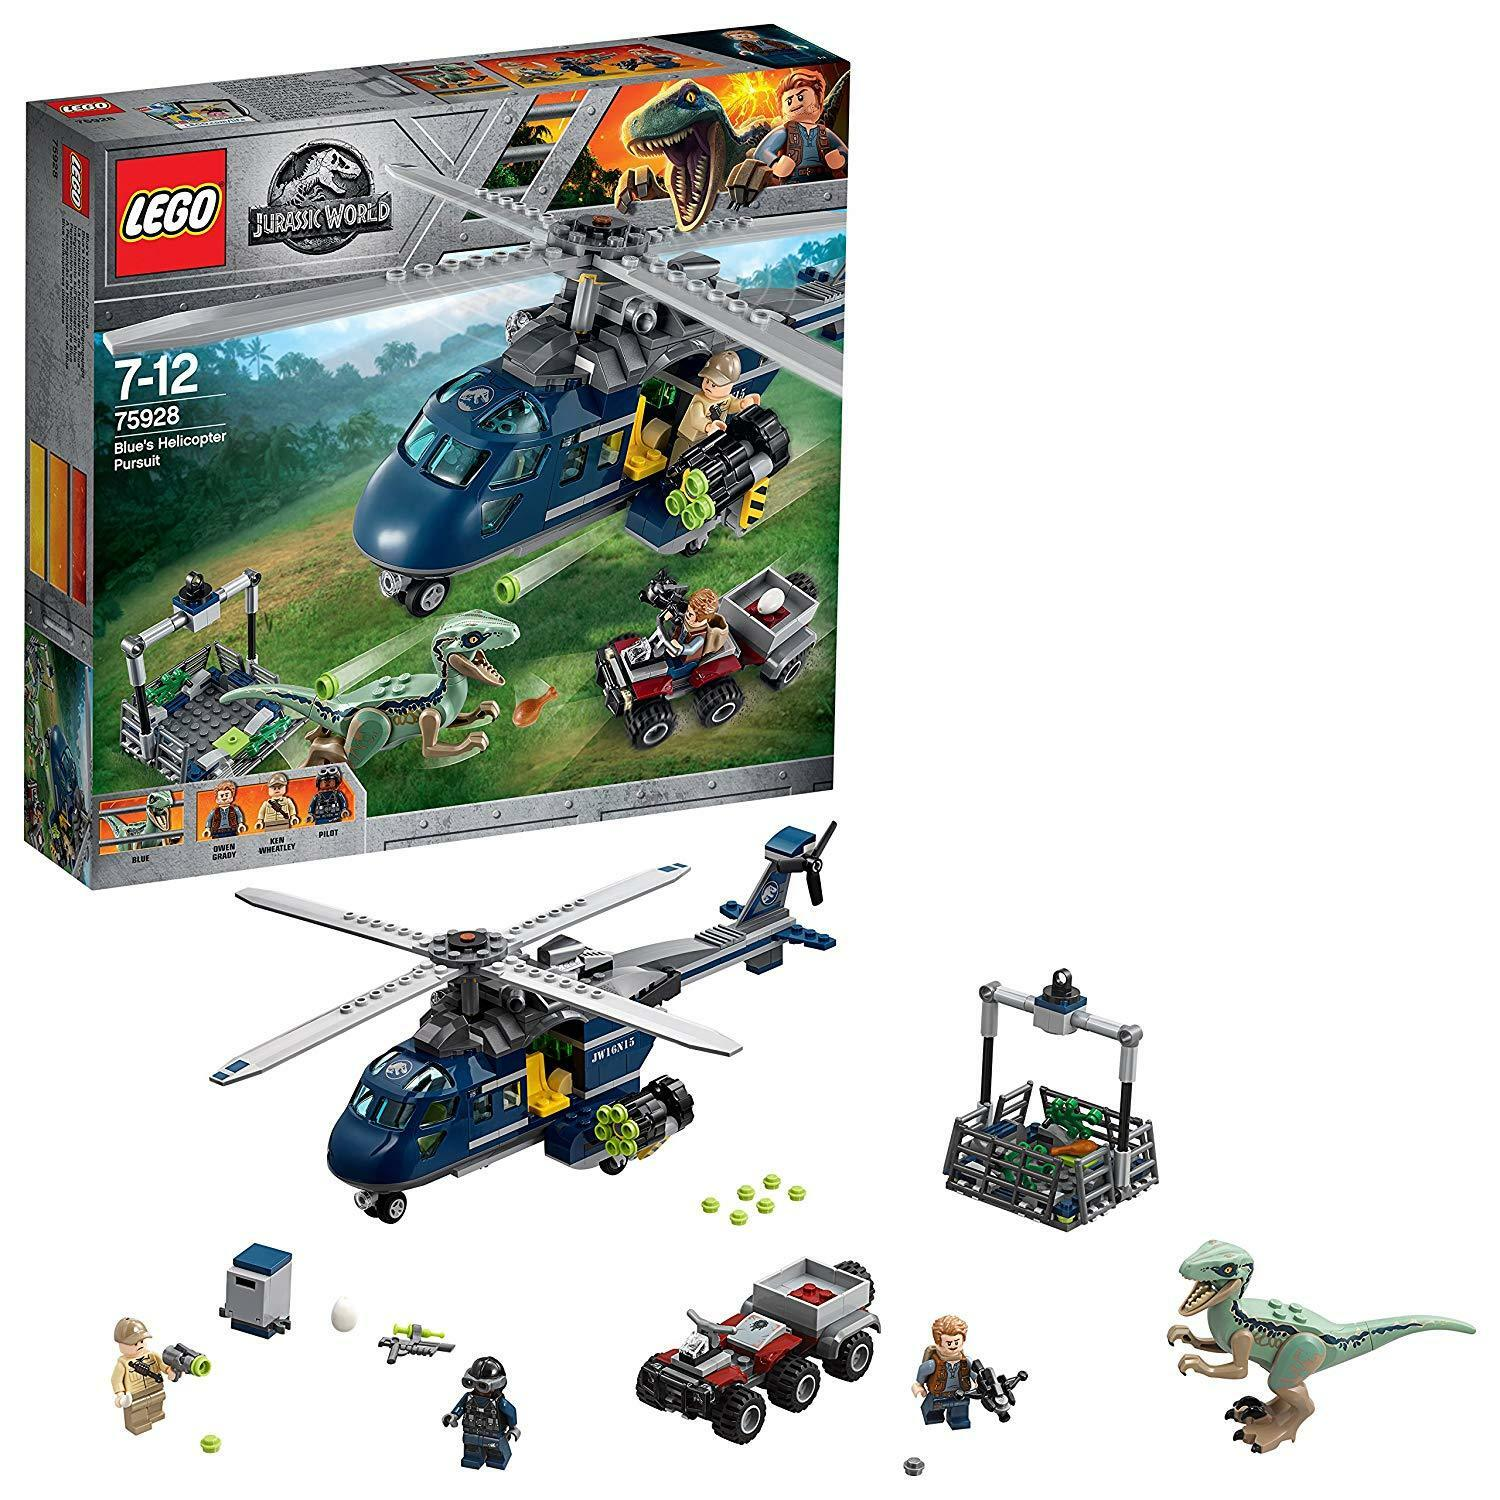 LEGO Jurassic World Blau's Helicopter Pursuit Construction Kids Play Dinosaur